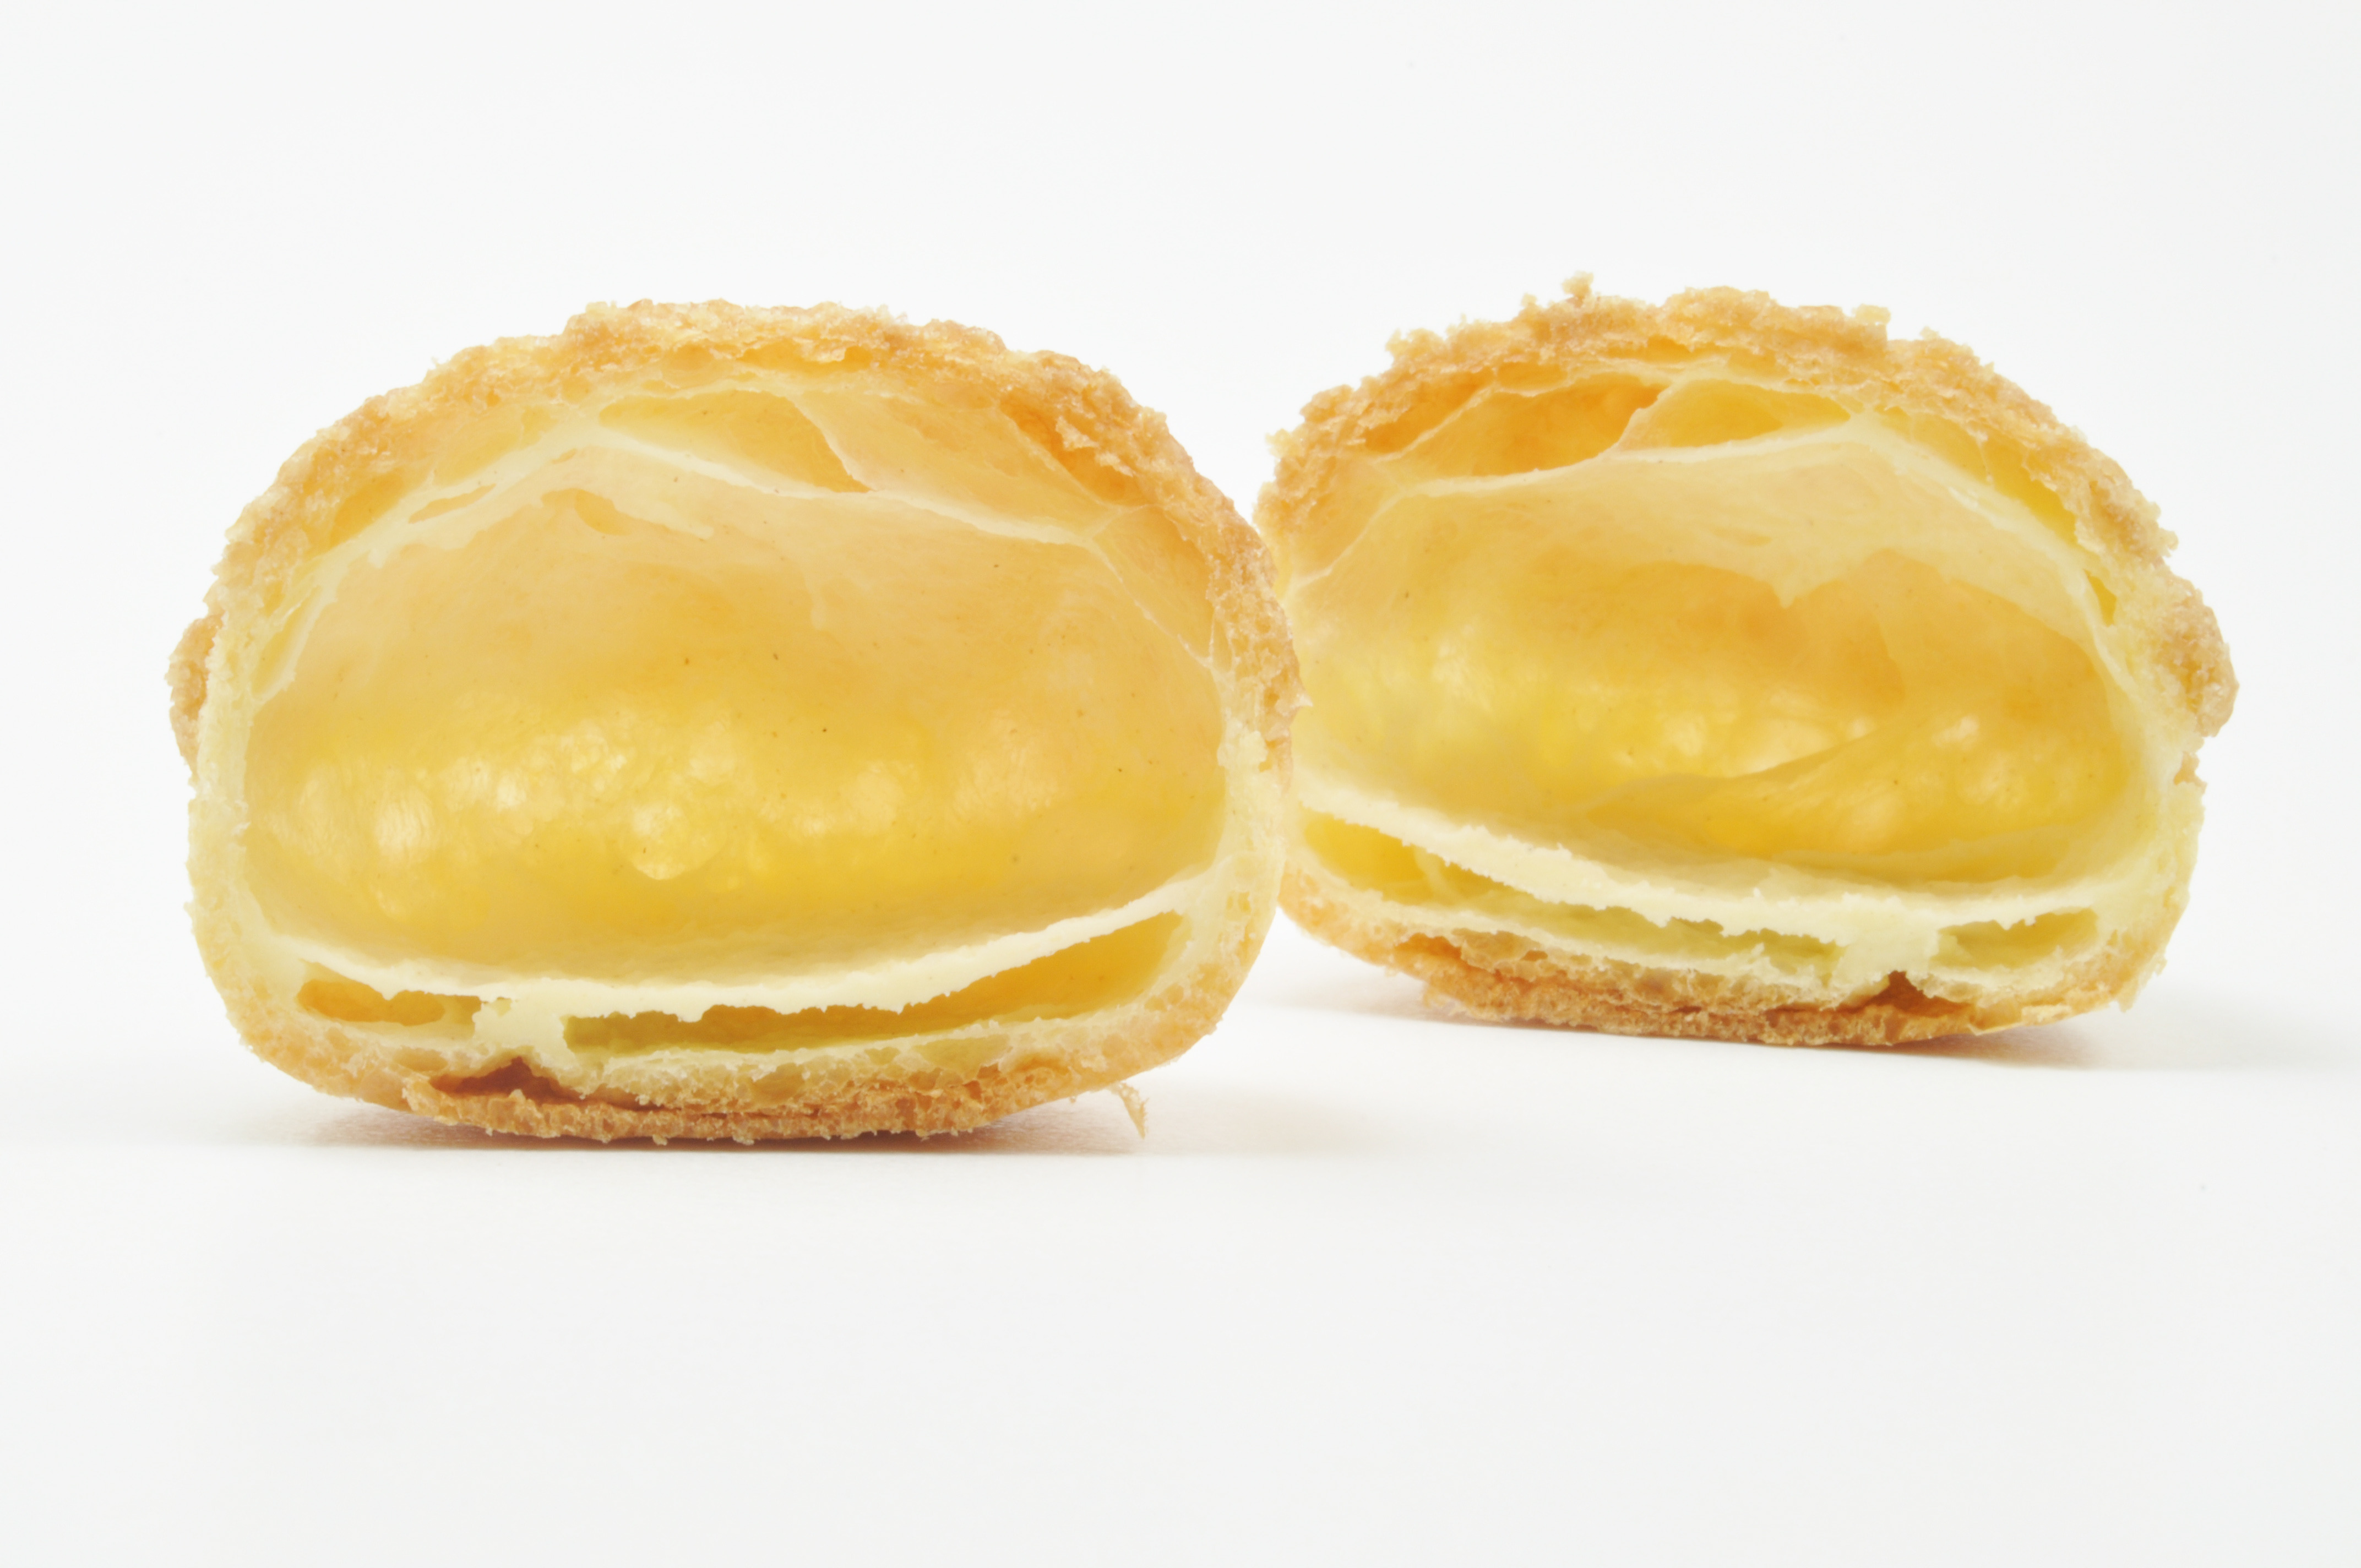 Pâte à Choux |with Streusel | Pastry Chef & Author Eddy Van Damme